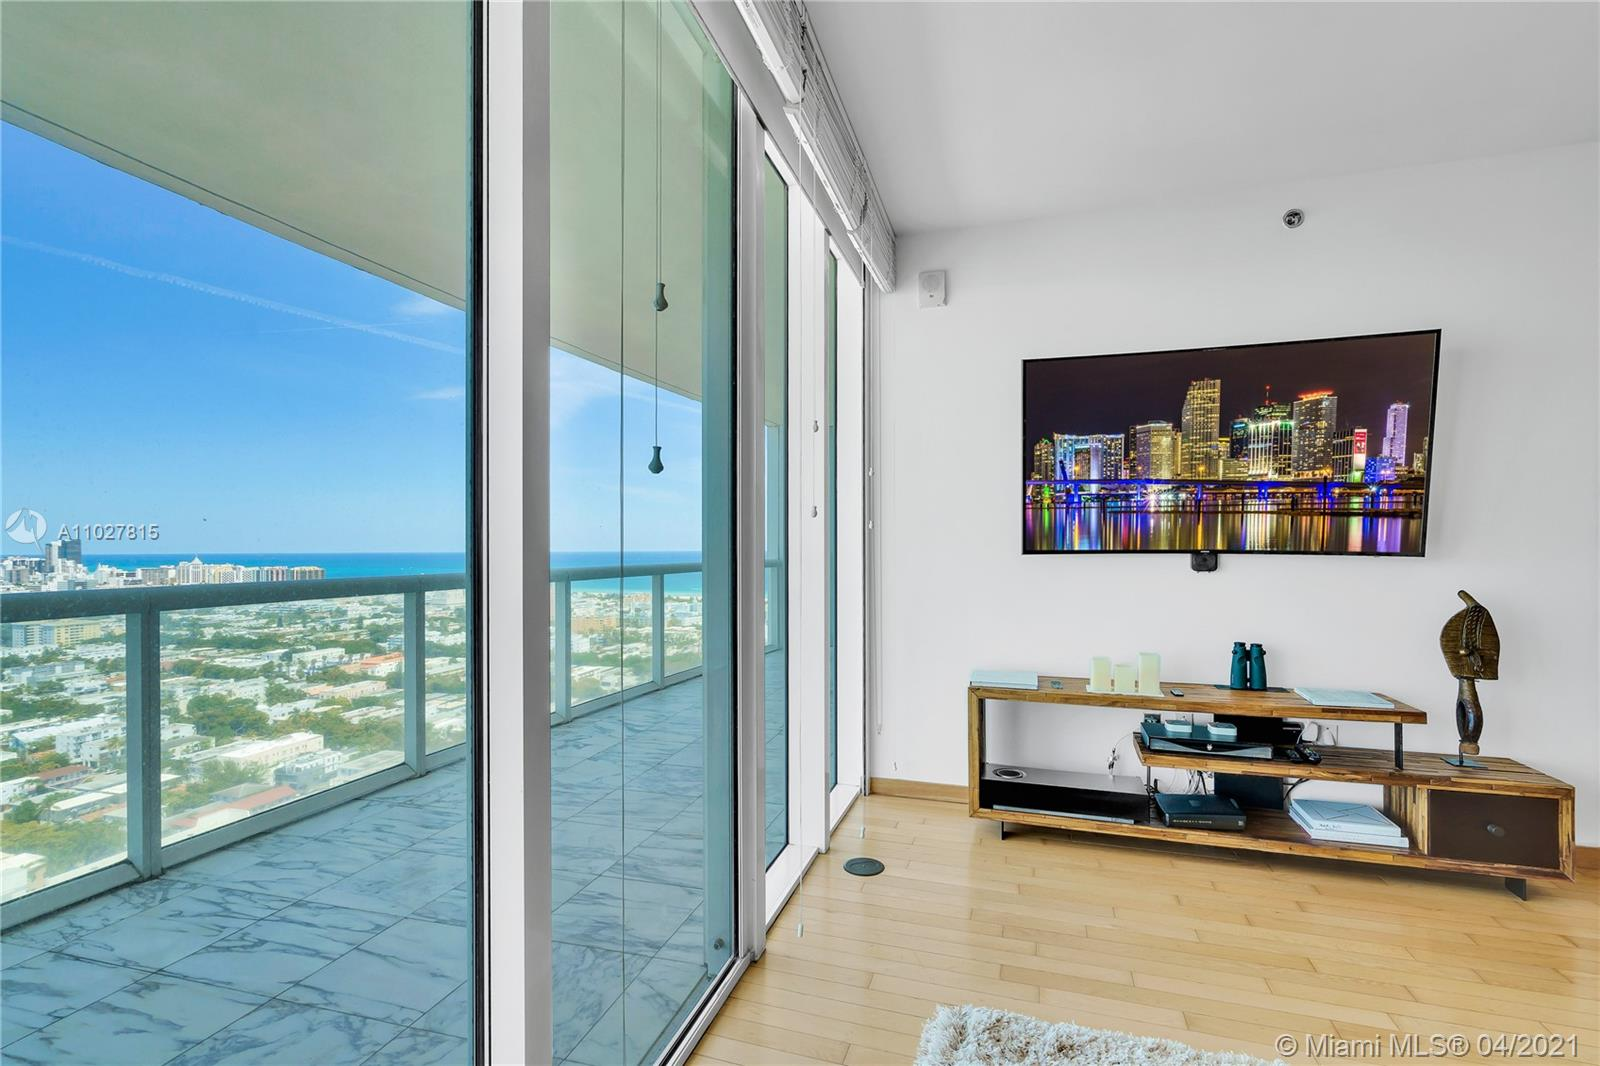 2BD/2BA ICON SOUTH BEACH DIRECT OCEAN AND BAY VIEWS: Excellent address! Offering gourmet kitchen, magnificent master suite with luxurious bath. Grand lobby, first-class amenities include an olympic-size heated pool, state of the art spa, private fitness c, , enter, tennis, marina, security, valet parking and concierge service. Finished to perfection and priced to sell. Easy to show - see broker remarks.